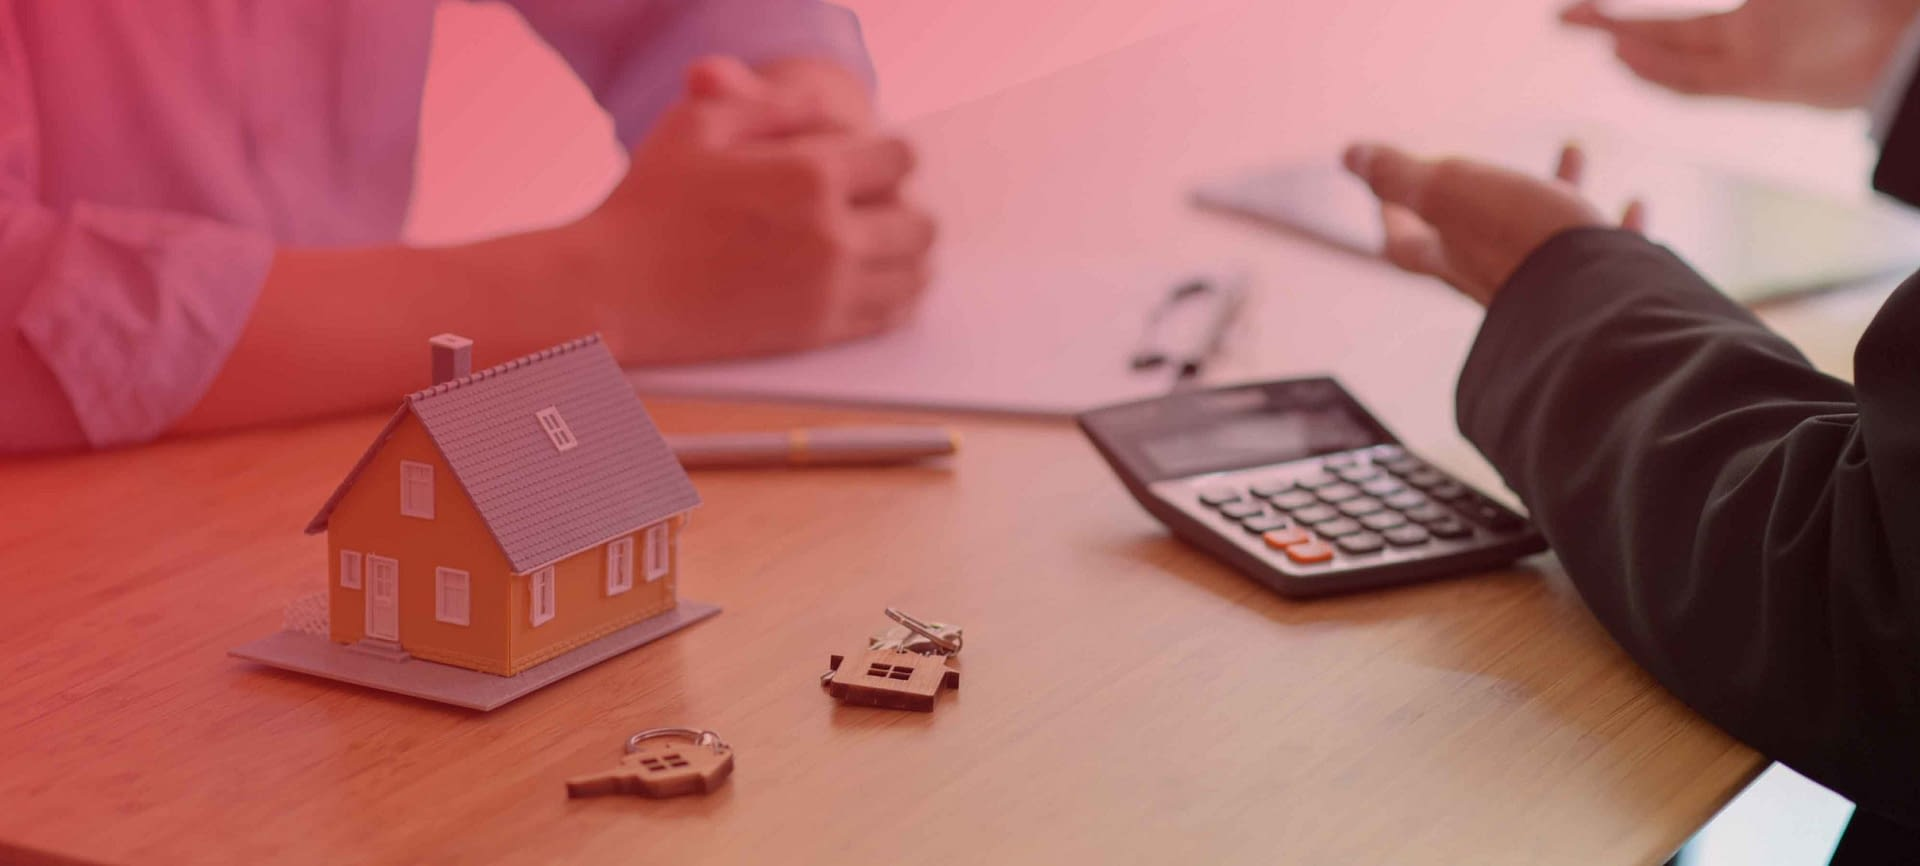 WHAT ARE THE BENEFITS AND DRAWBACKS OF SHOPPING FOR A HOME?